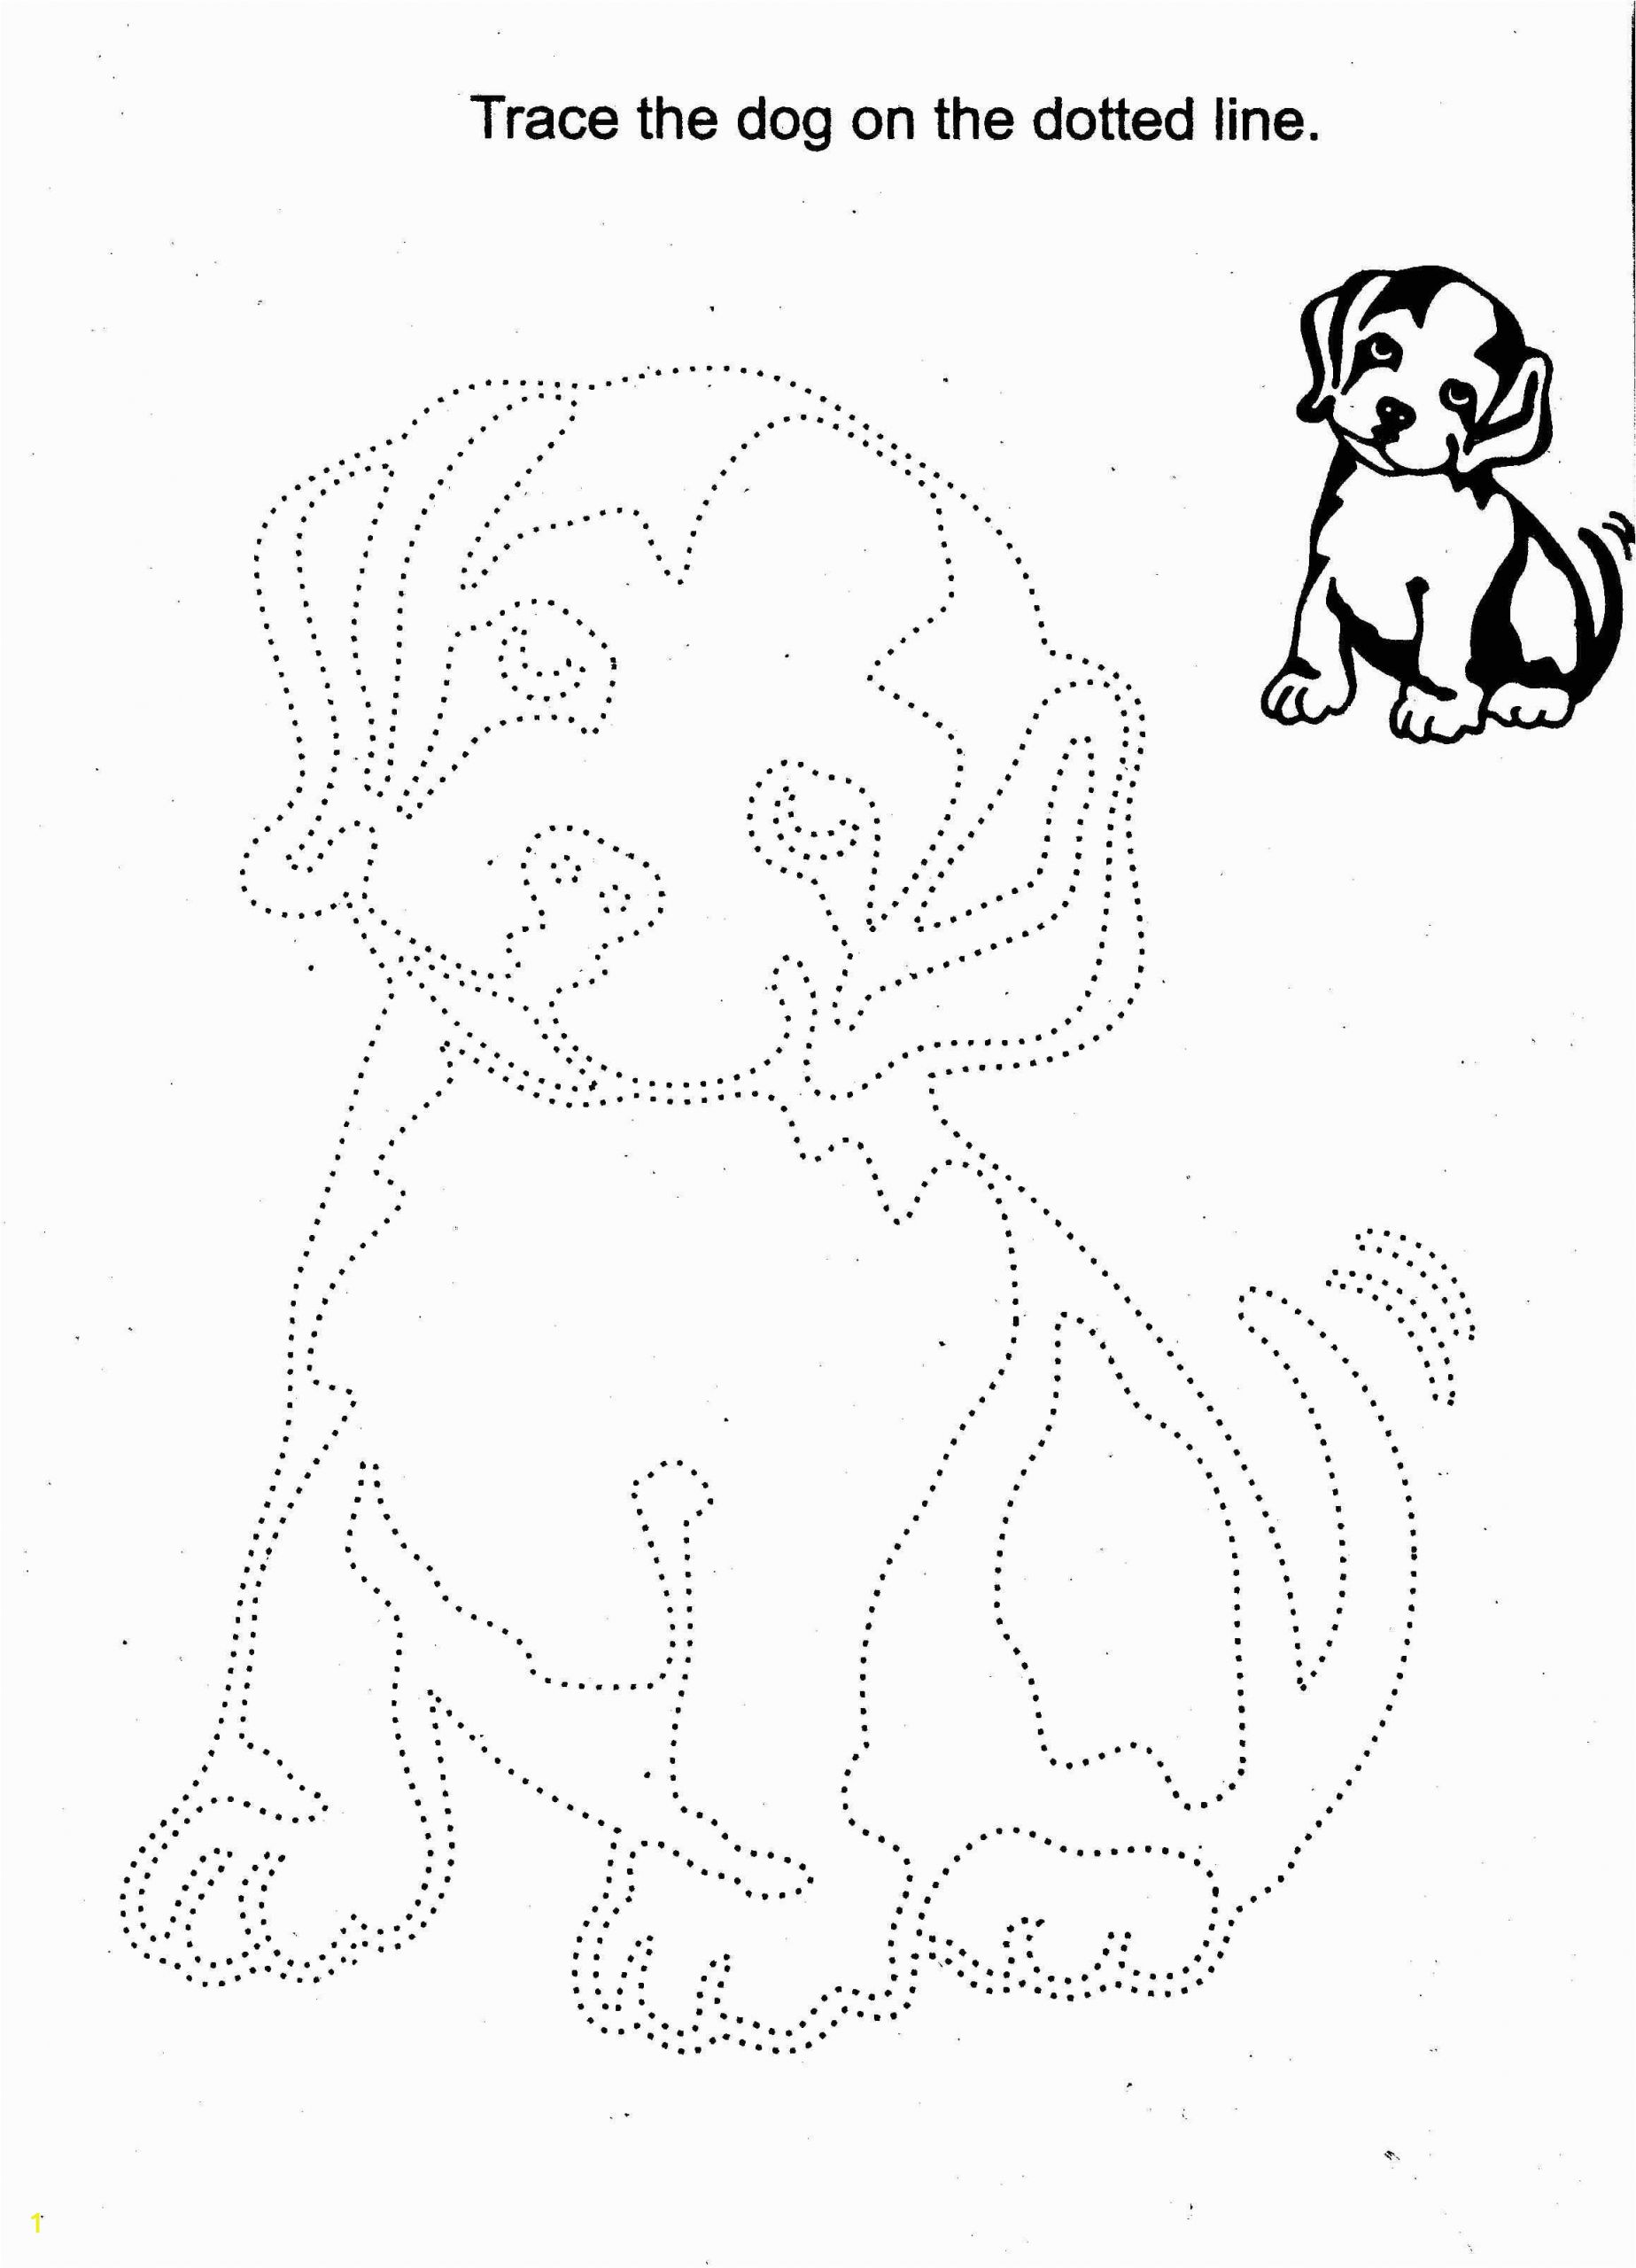 Golden Retriever Cute Puppy Coloring Pages Golden Retriever Puppy Coloring Pages Printable Coloring